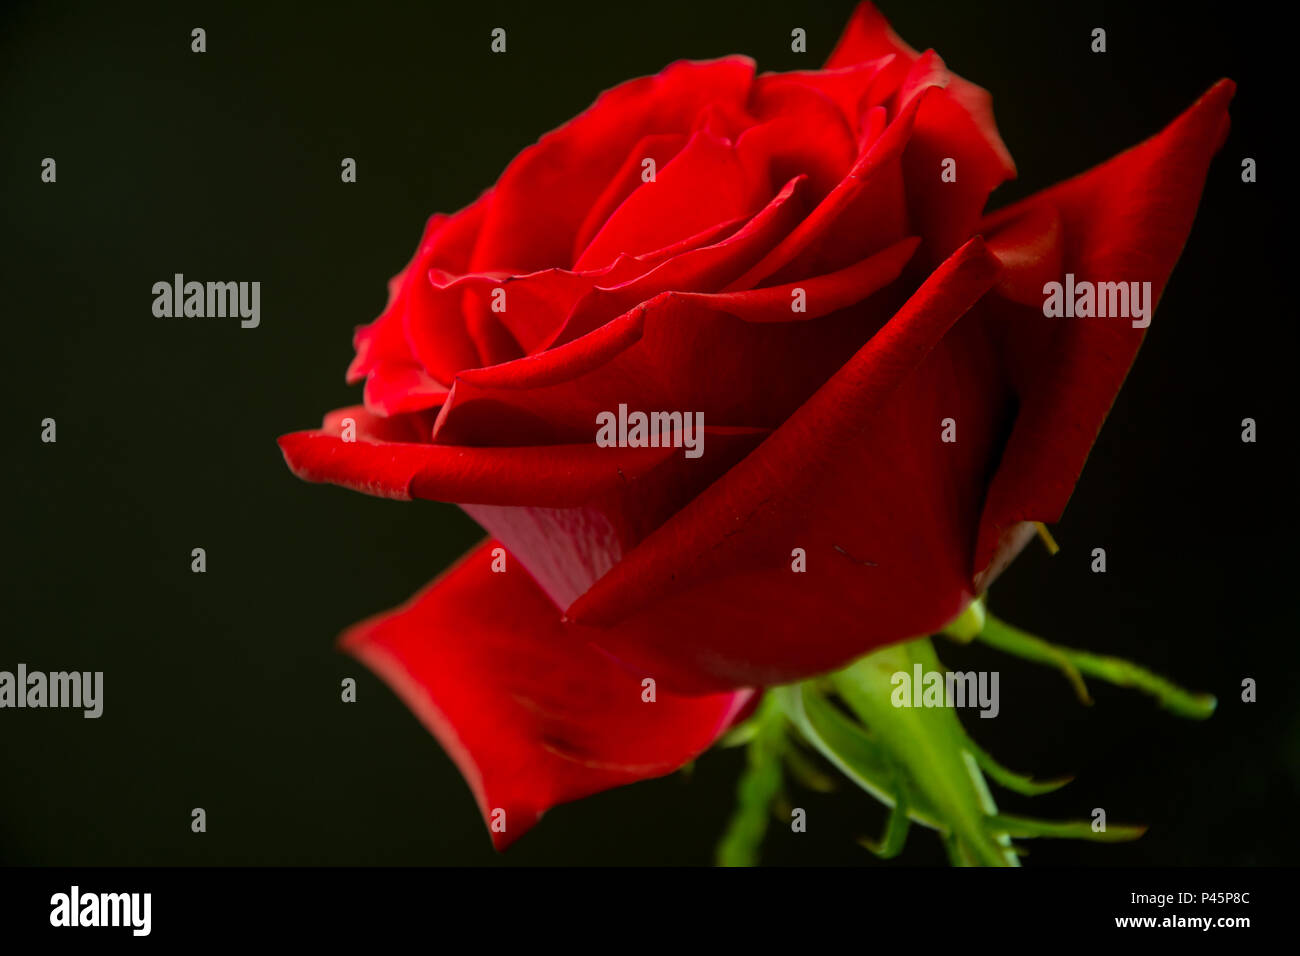 Closeup of beautiful, velvety red rose against black background - Stock Image